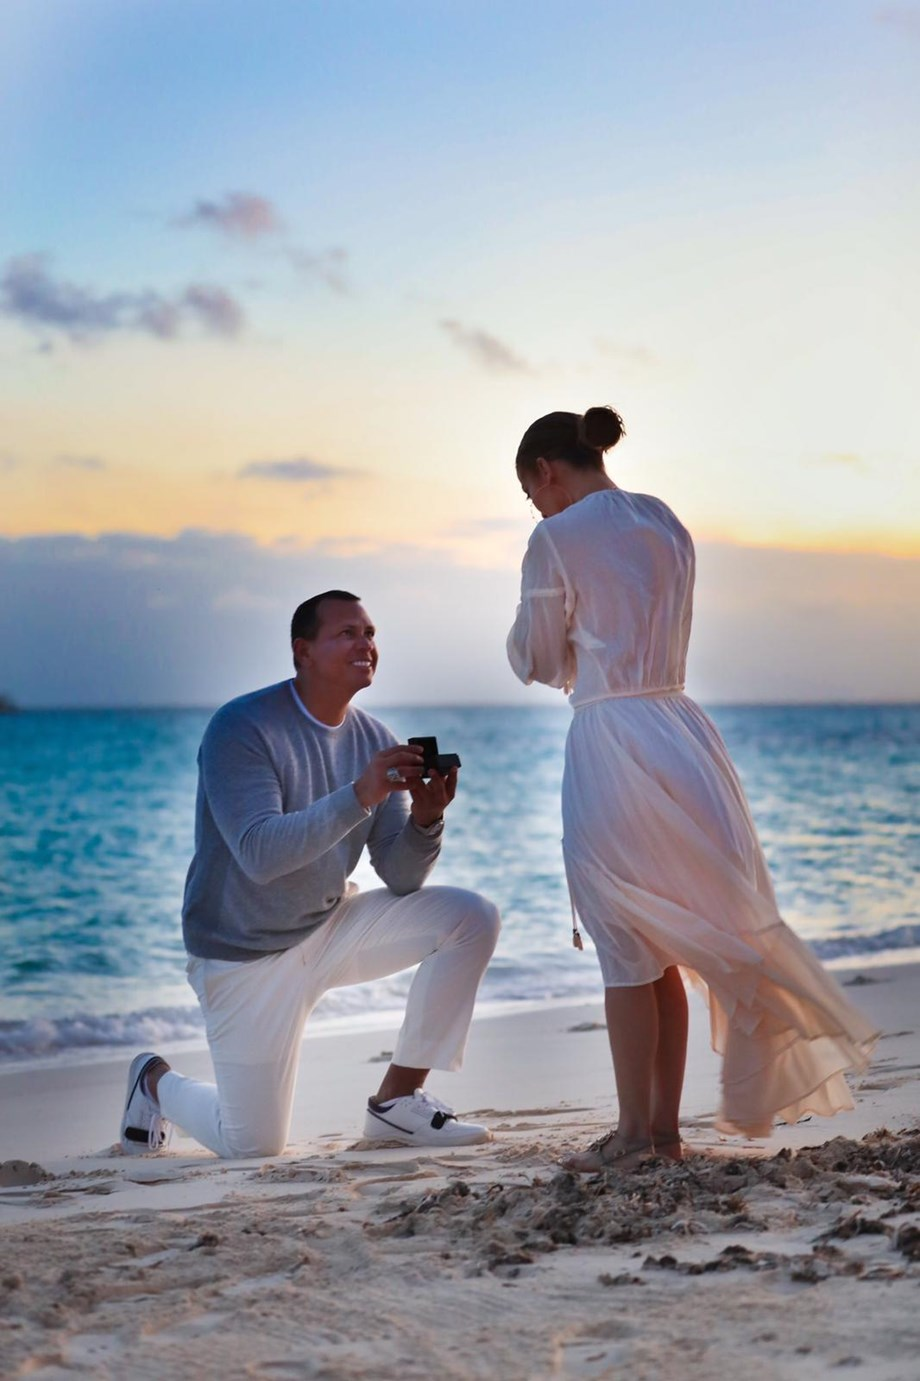 Alex Rodriguez rehearsed for three days before finally proposing Lopez